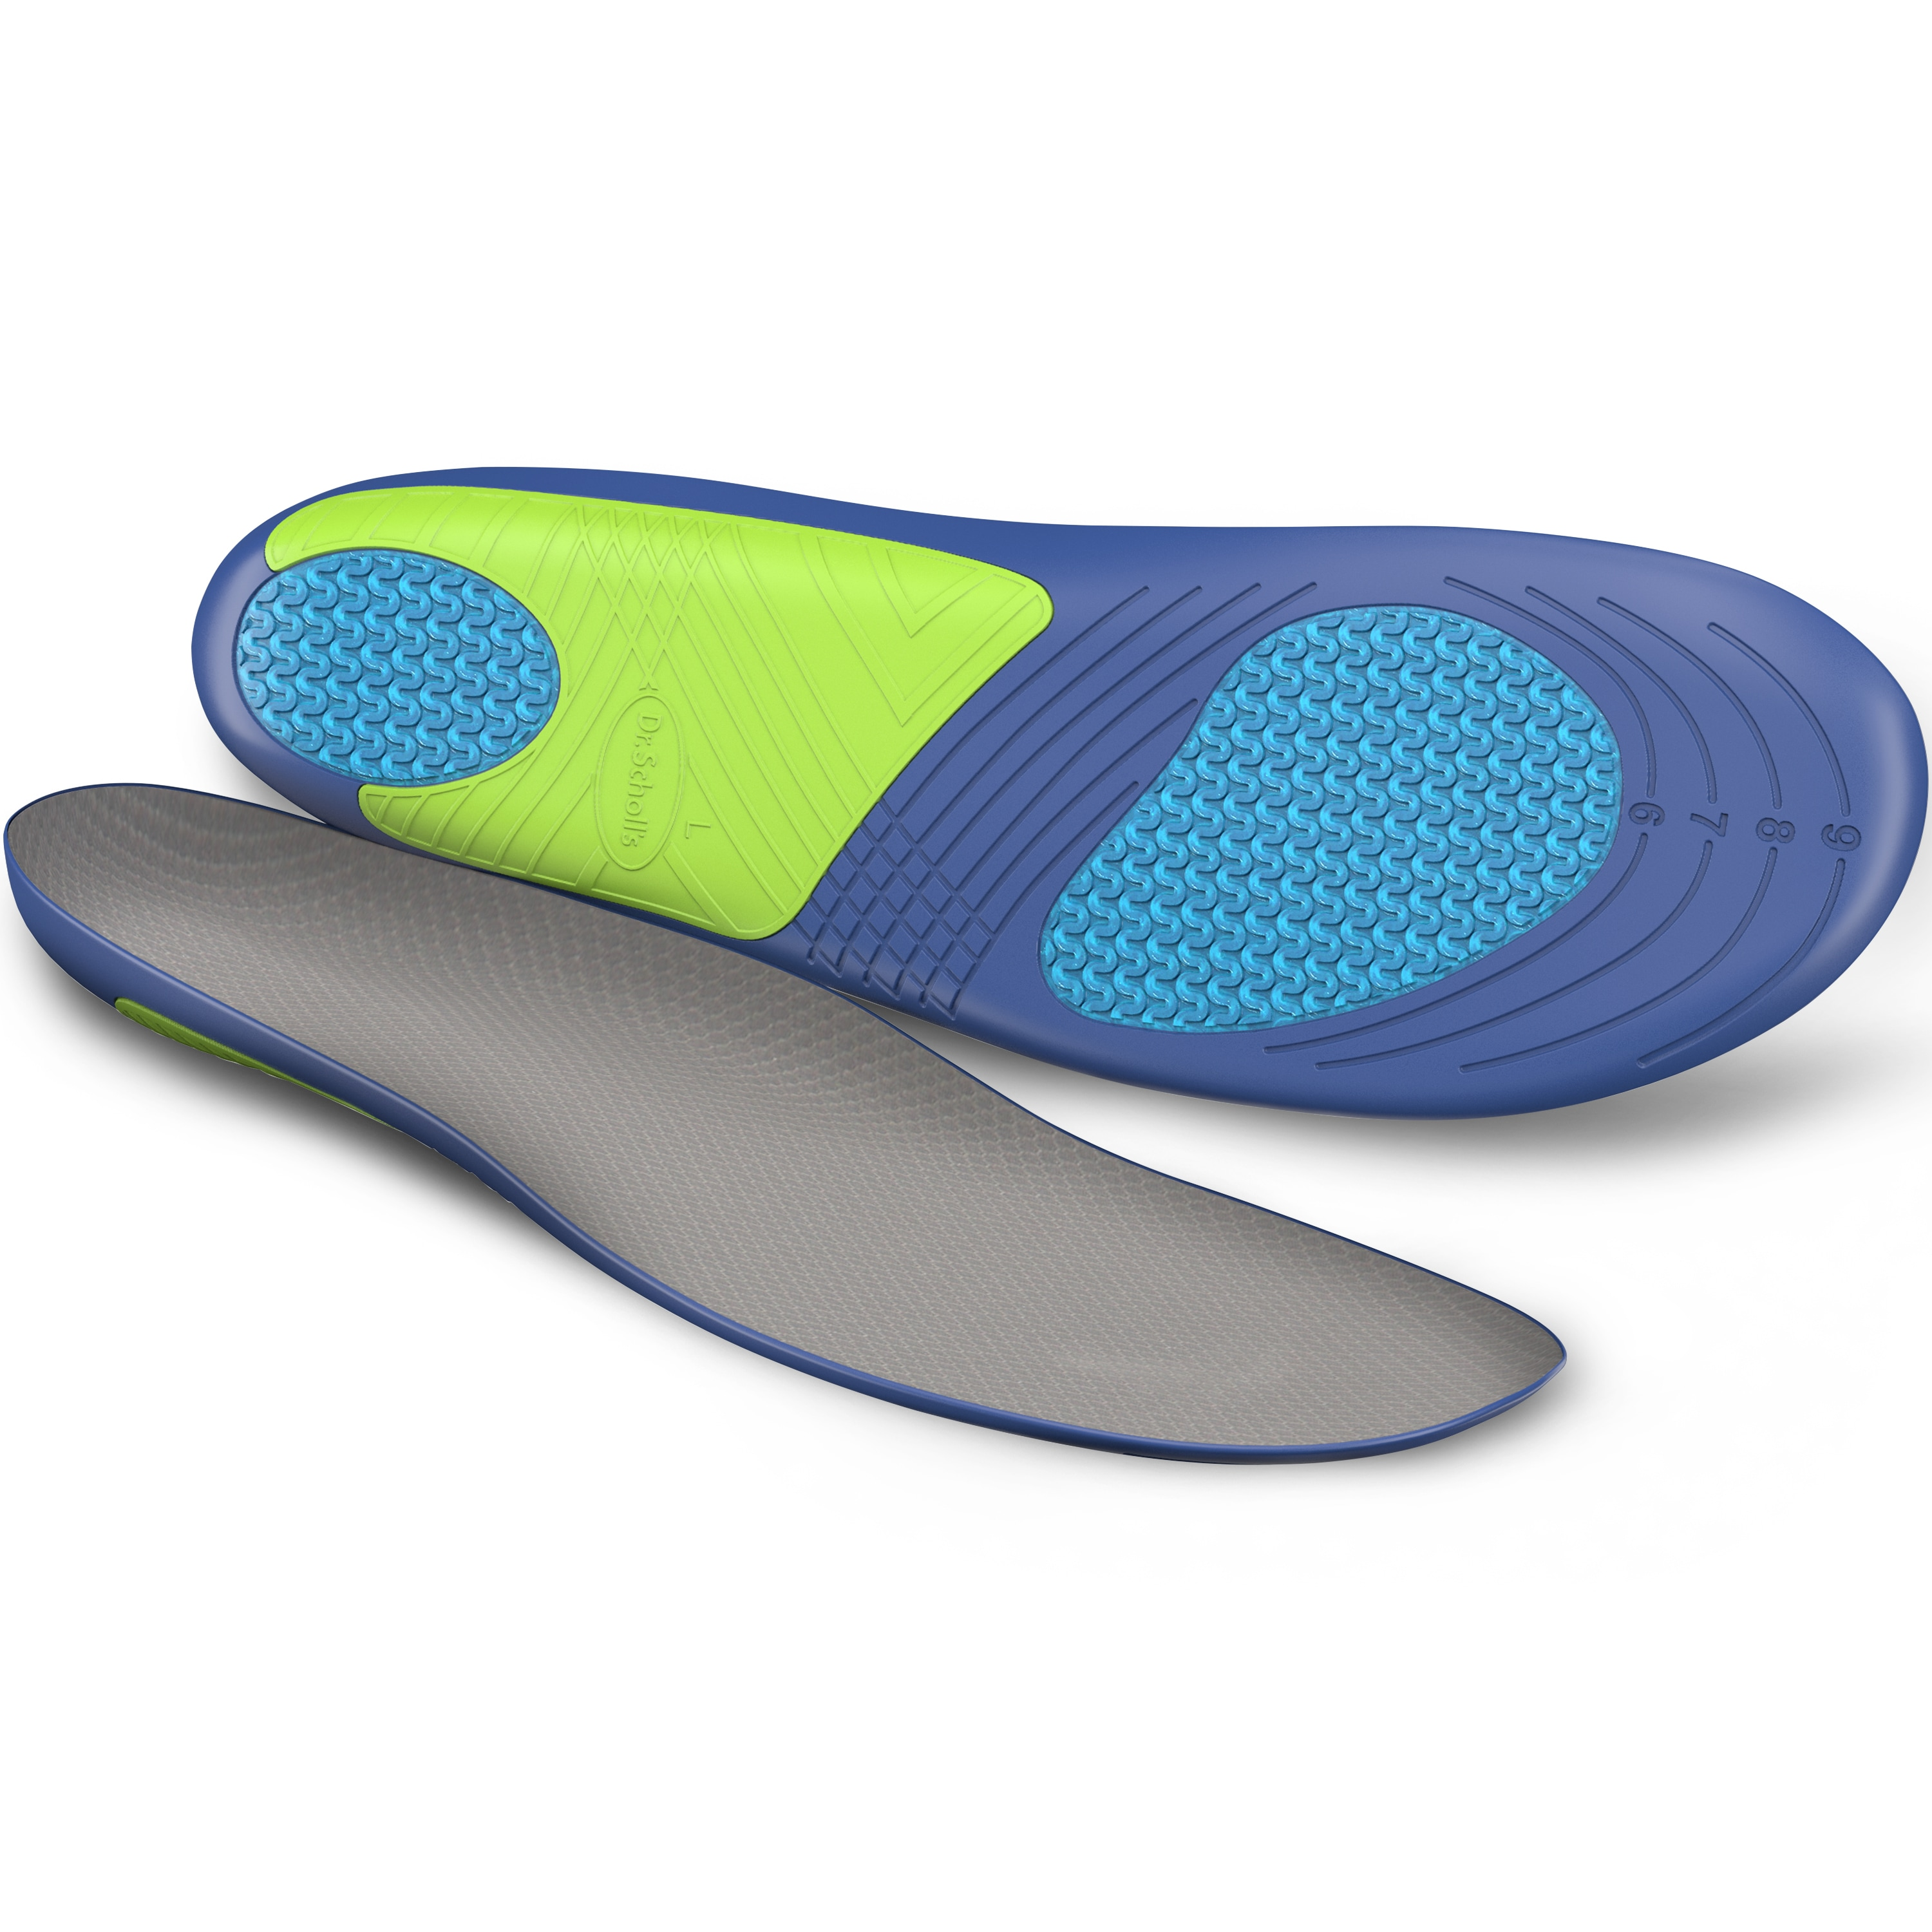 Image of Dr. Scholl's Sports Insole